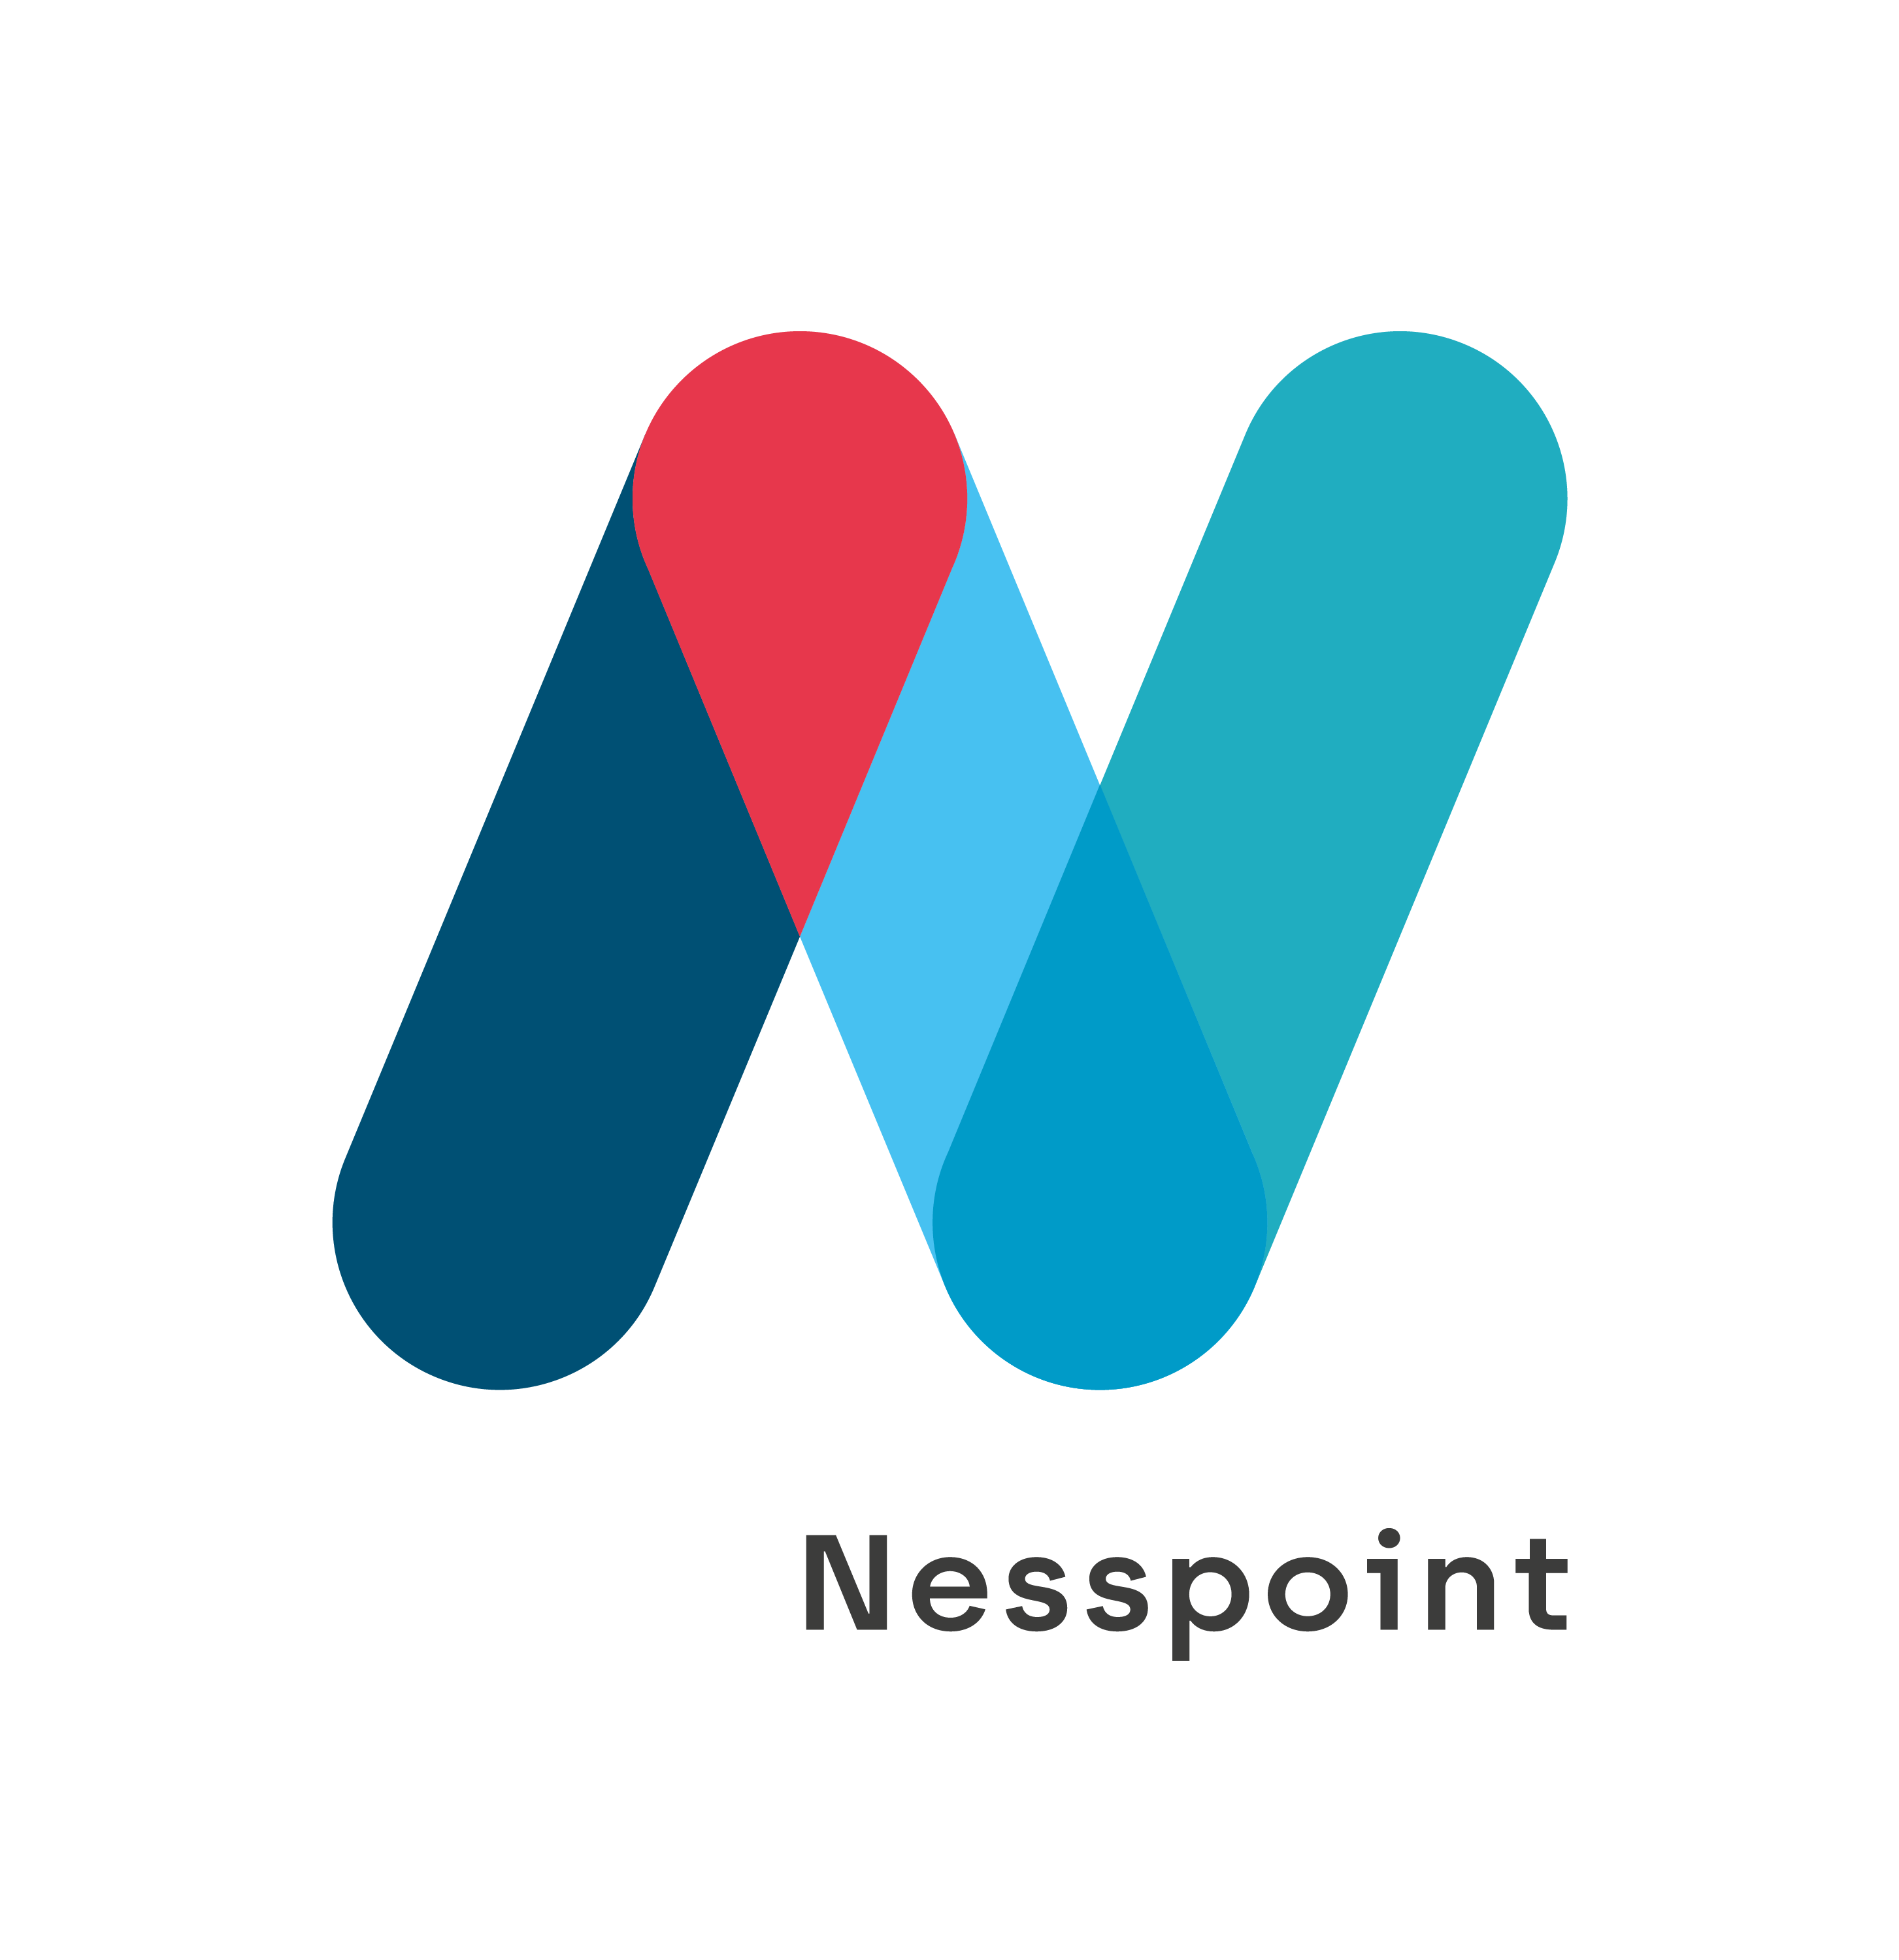 Nesspoint Ltd